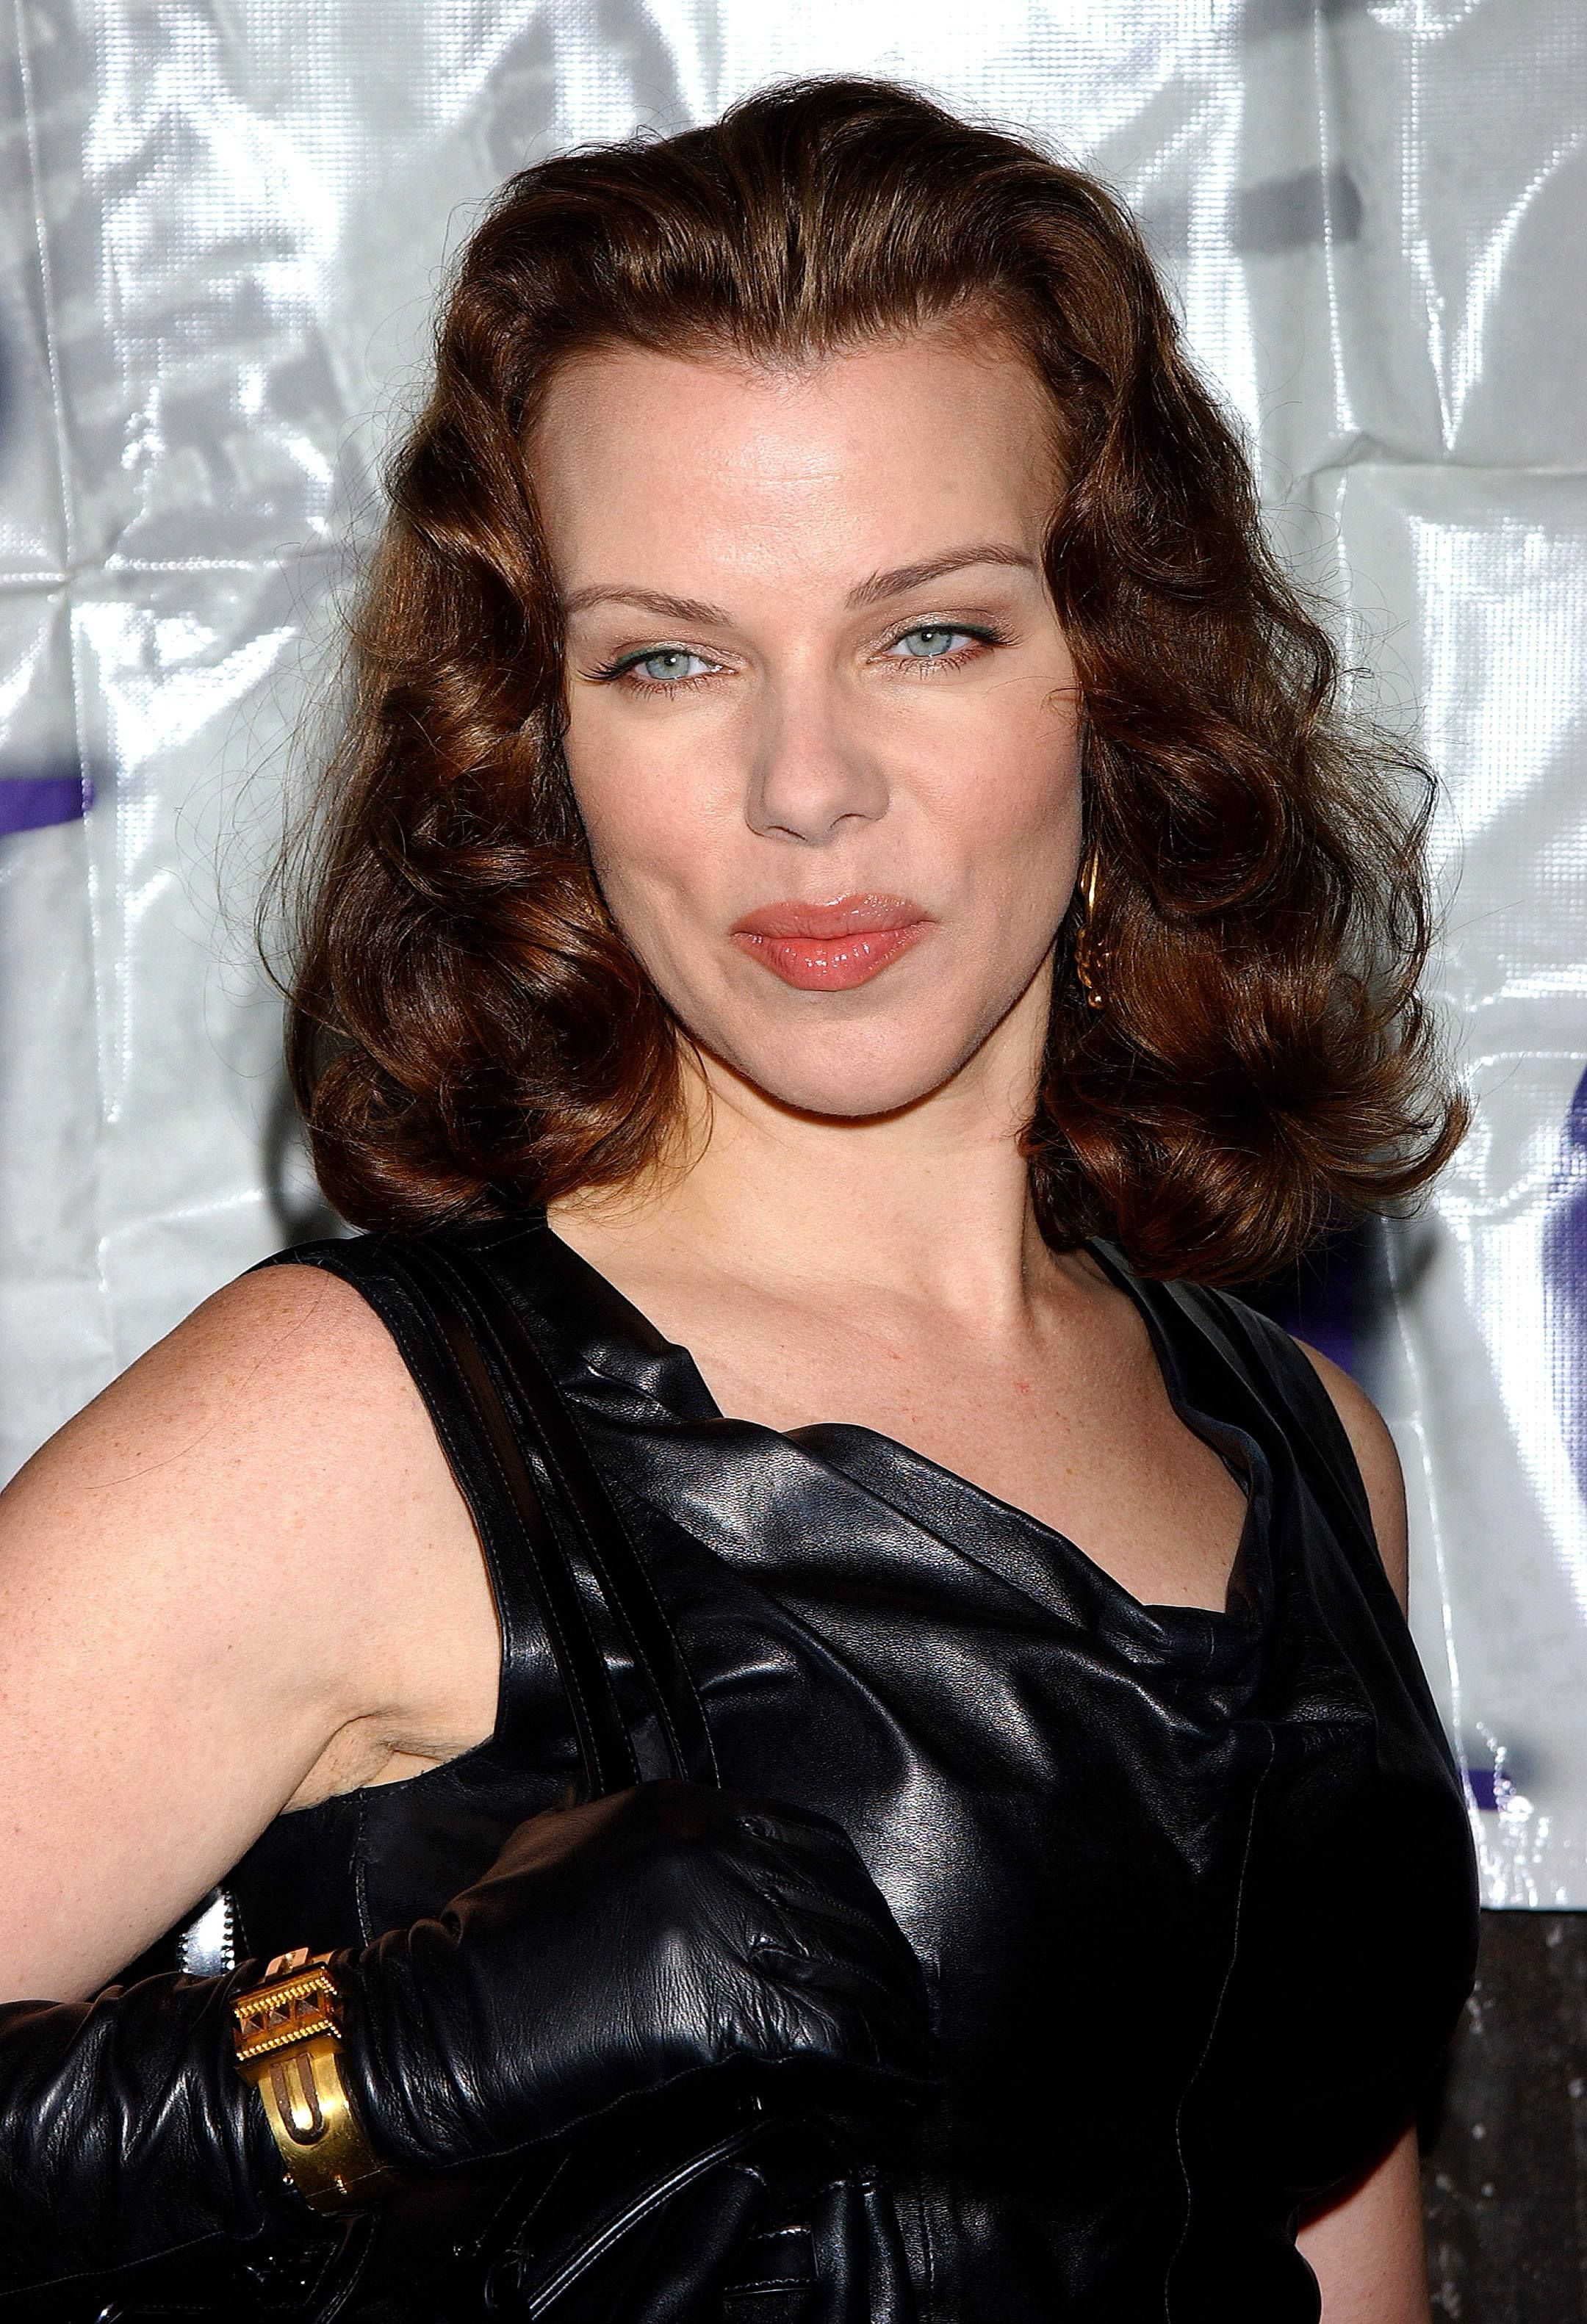 Image detail for -Debi Mazar in all-leather outfit ...